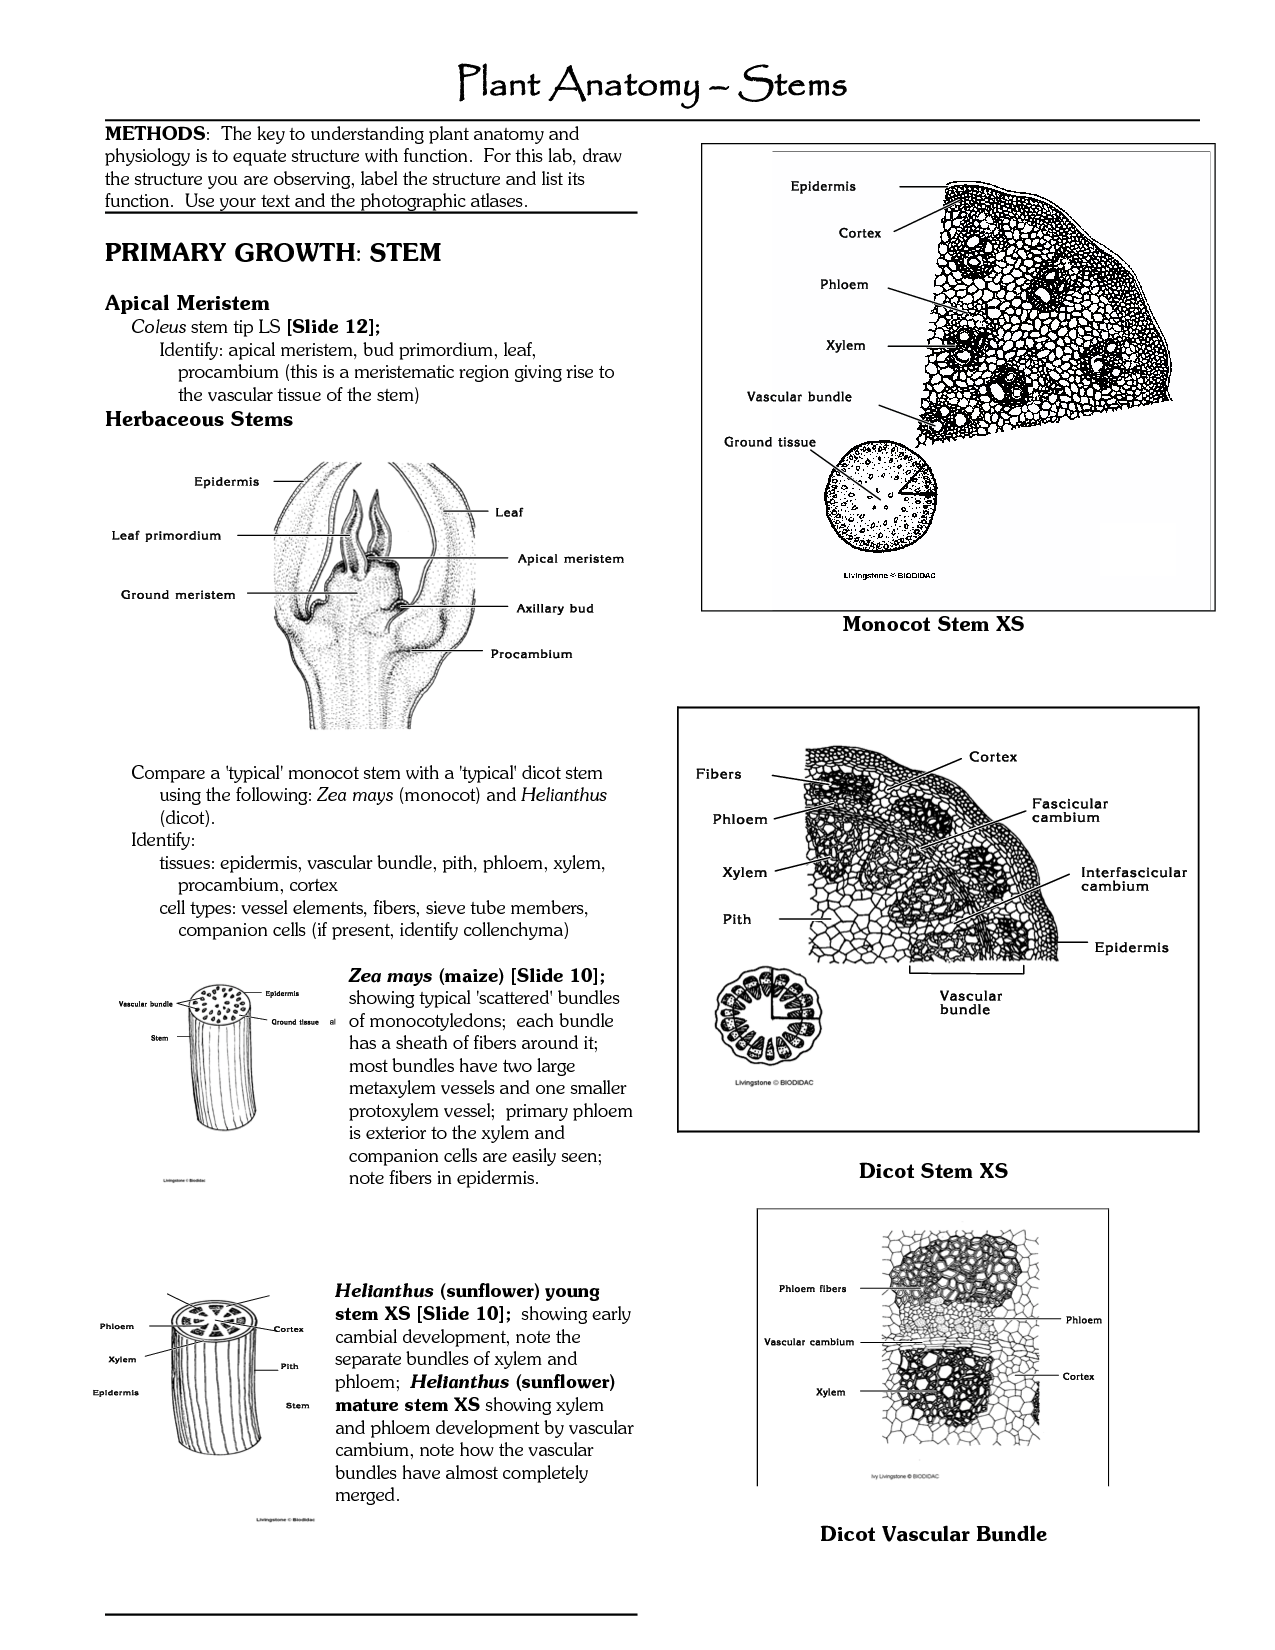 worksheet Xylem And Phloem Worksheet differences between xylem and phloem vessels the structure is non vascular plants